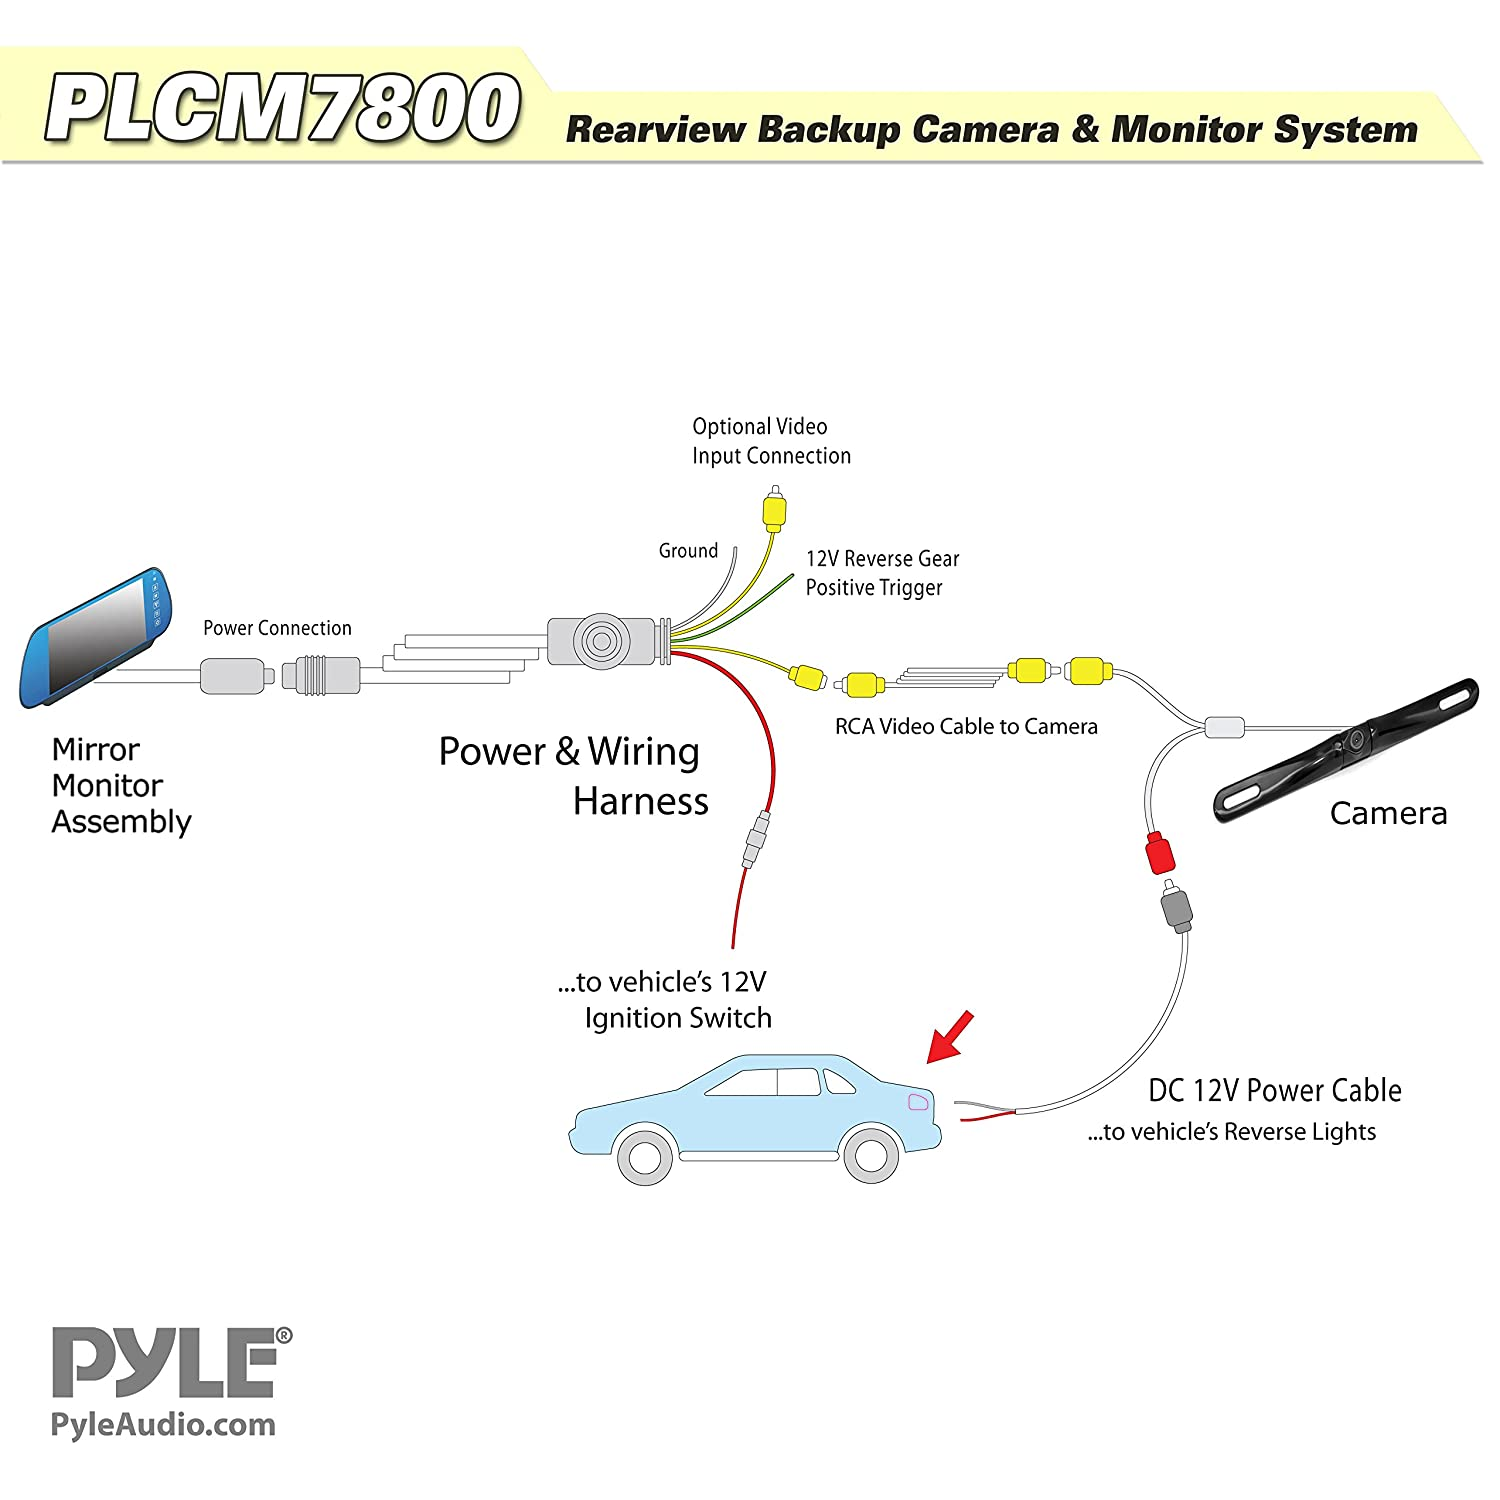 Reverse Camera Gm Backup Camera Wiring Diagram from schematron.org